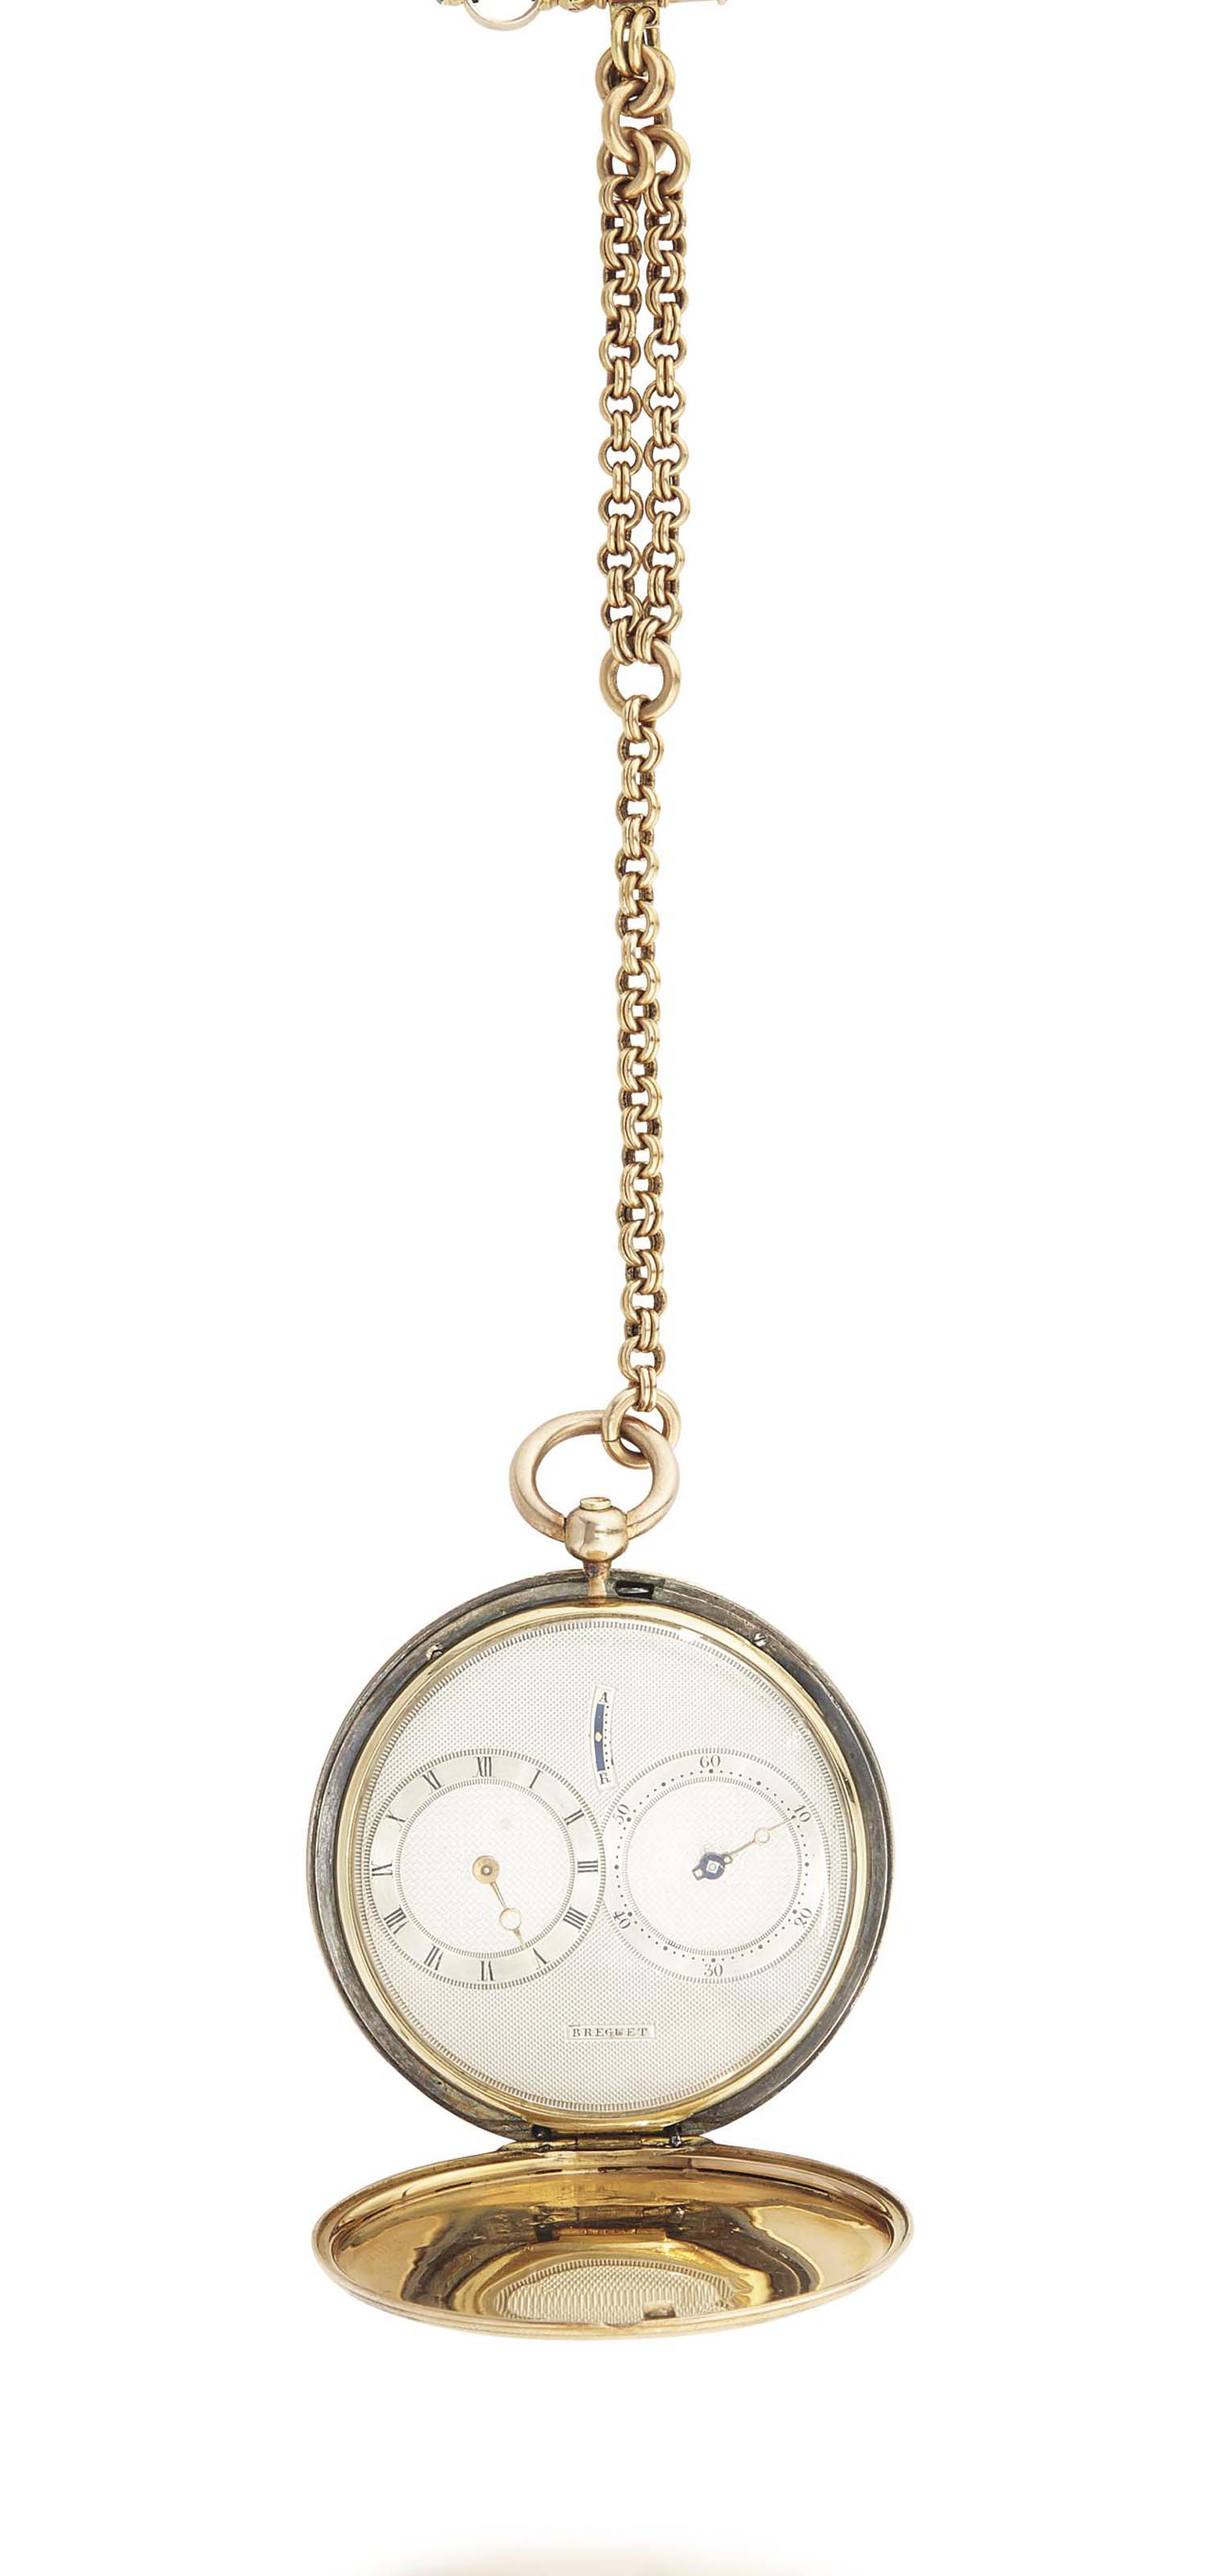 """Breguet No. 4420 """"Montre simple plate à deux cadrans excentriques d'heures et minutes"""". A very fine, rare and historically important 18K gold and silver hunter case cylinder watch with excentric hour and minute dials, sold to HM King George IV of Great Britain, with origianl fitted red Morocco box no. 4420"""